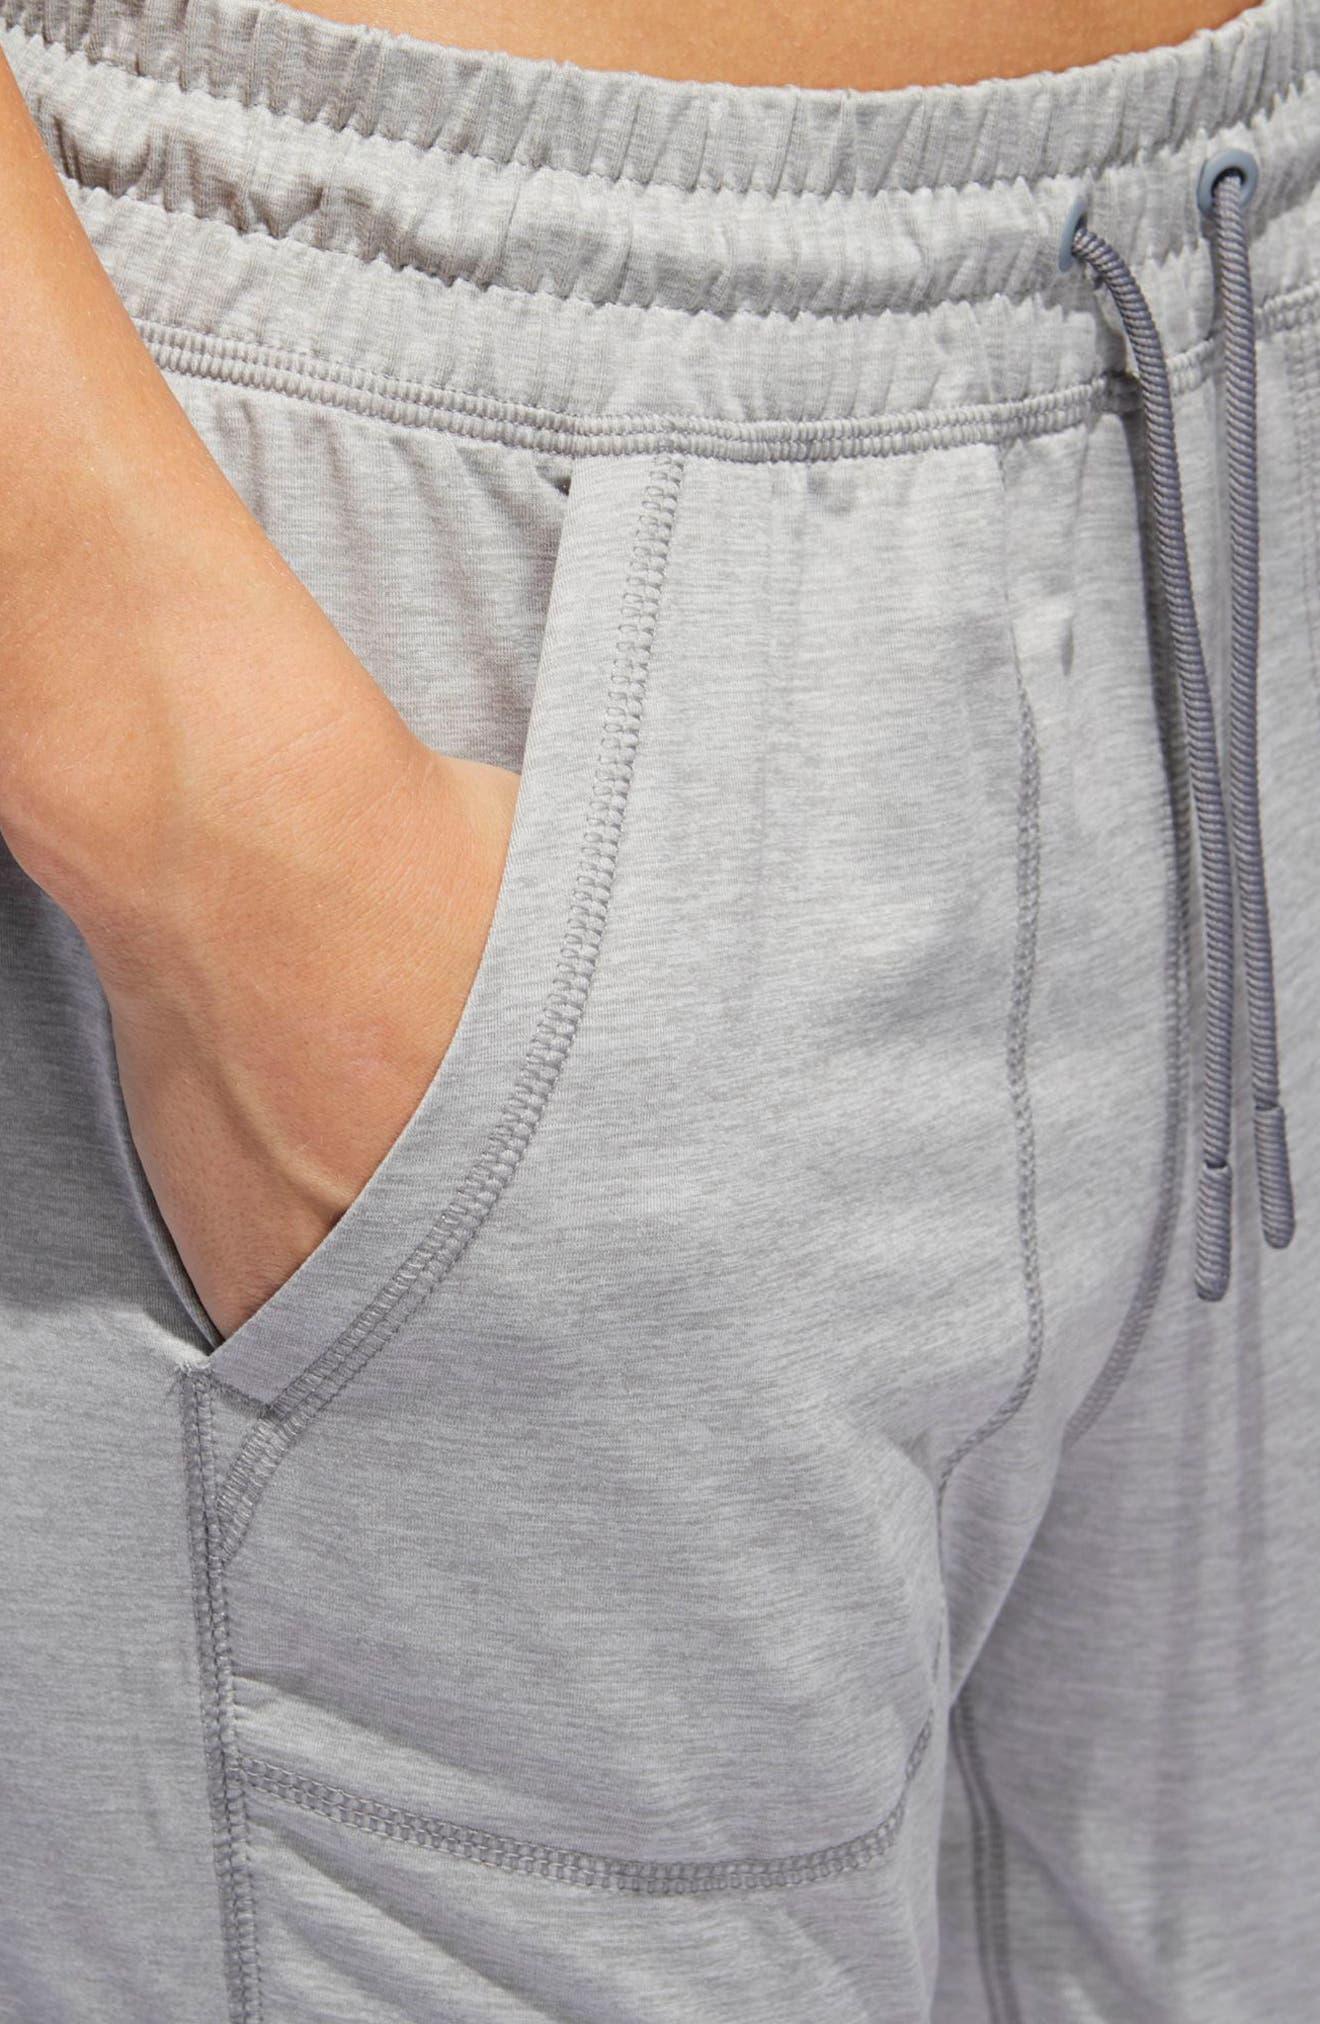 ID LBD Jogger Pants,                             Alternate thumbnail 4, color,                             035